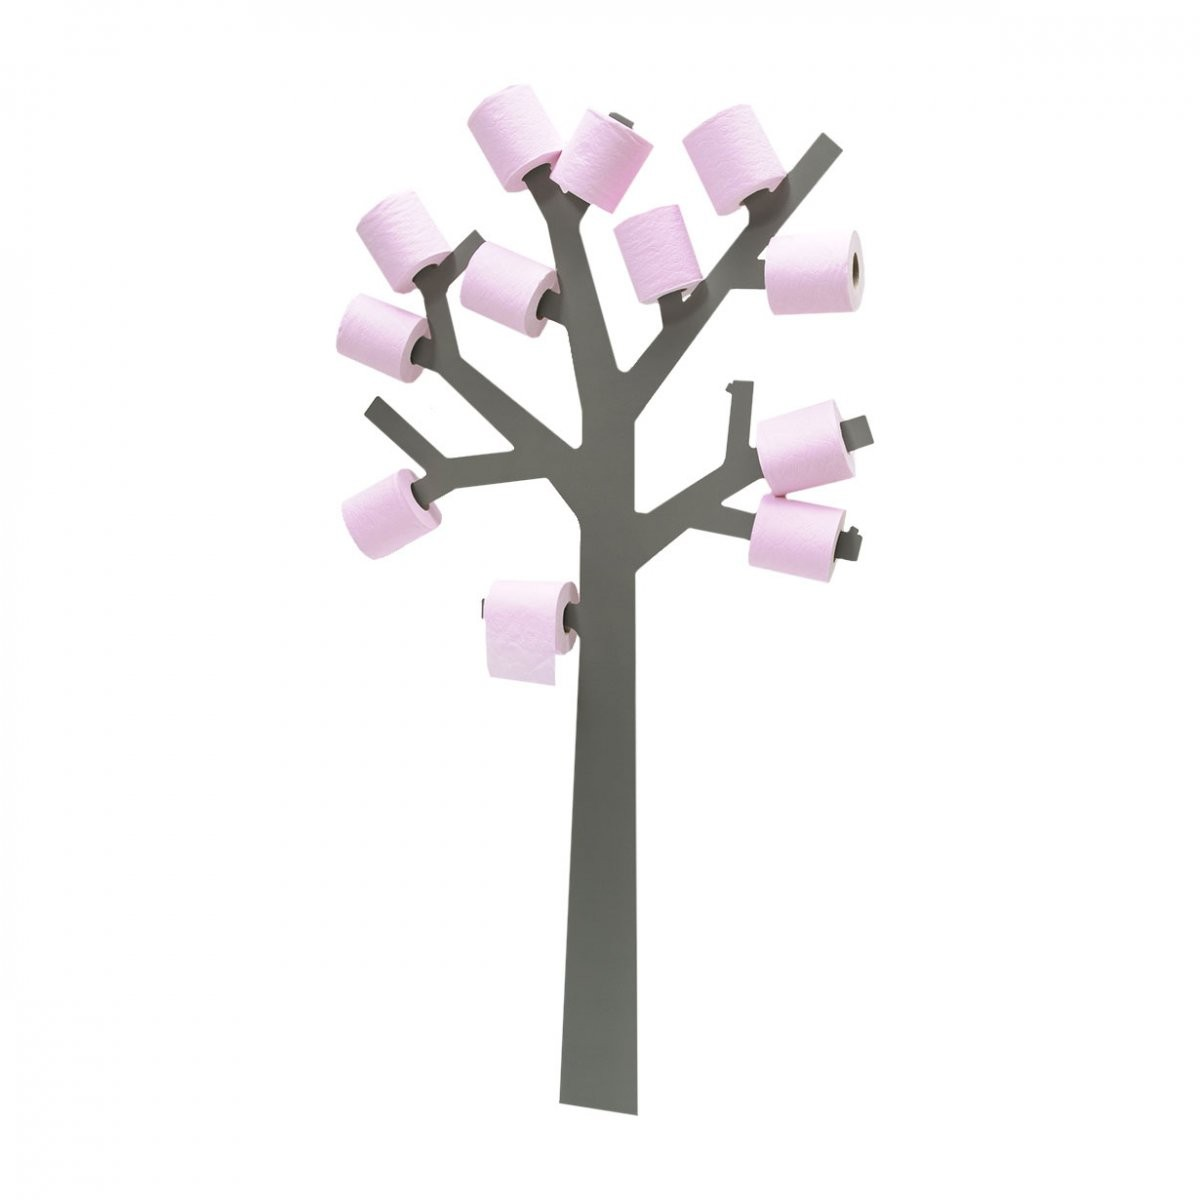 pqtier tree toilet roll holder presse citron design is this. Black Bedroom Furniture Sets. Home Design Ideas